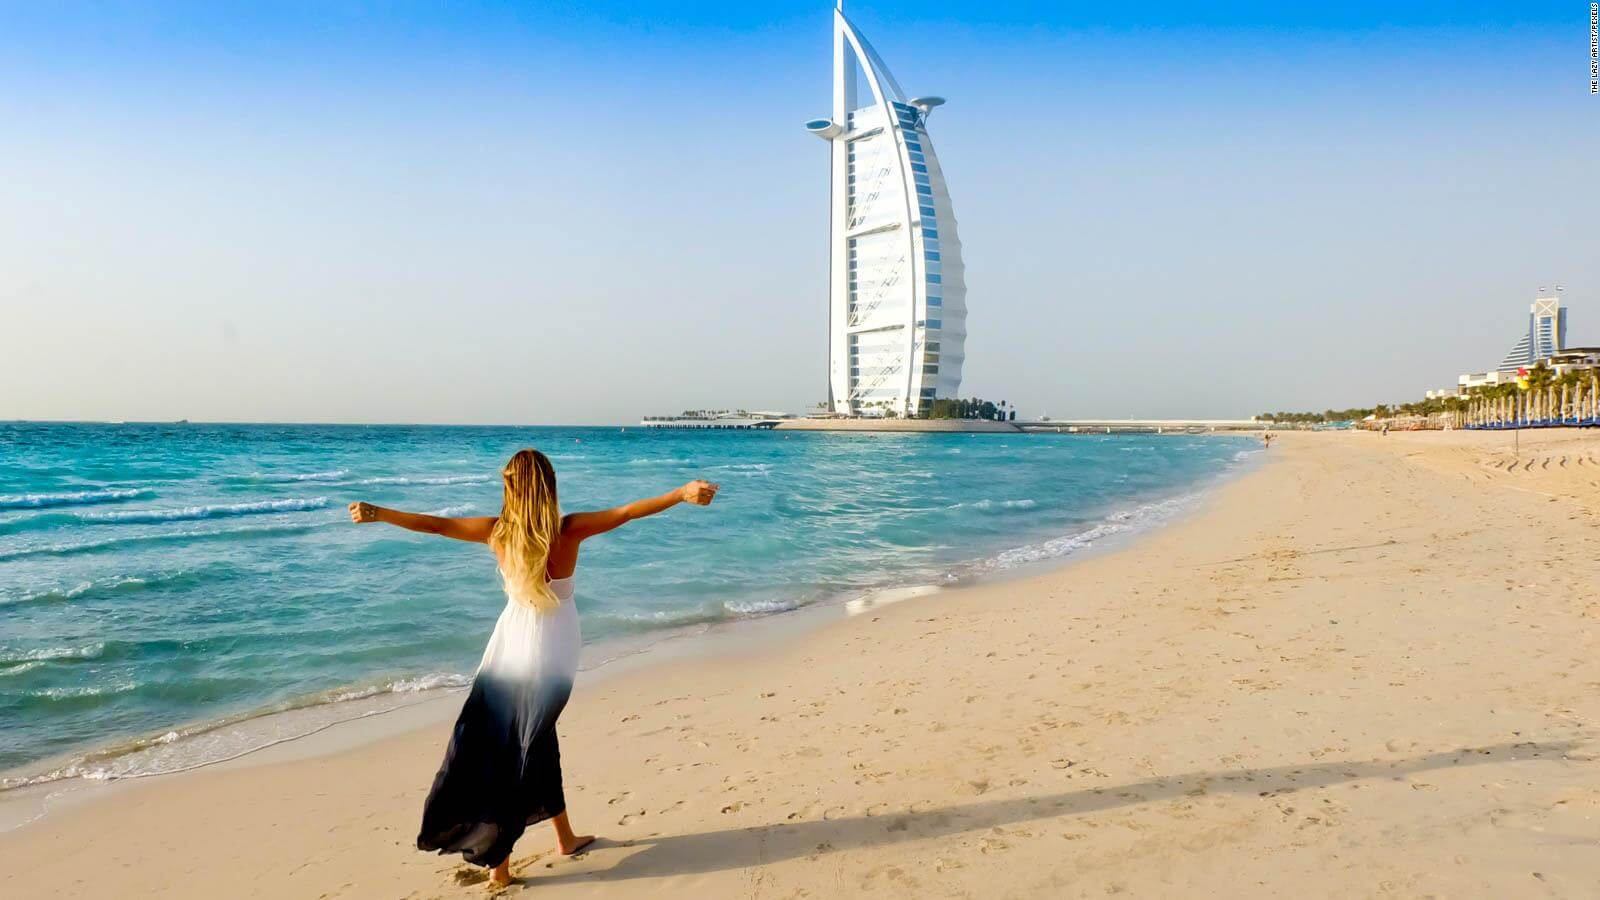 A Beach Lover and Moving Home in Dubai?